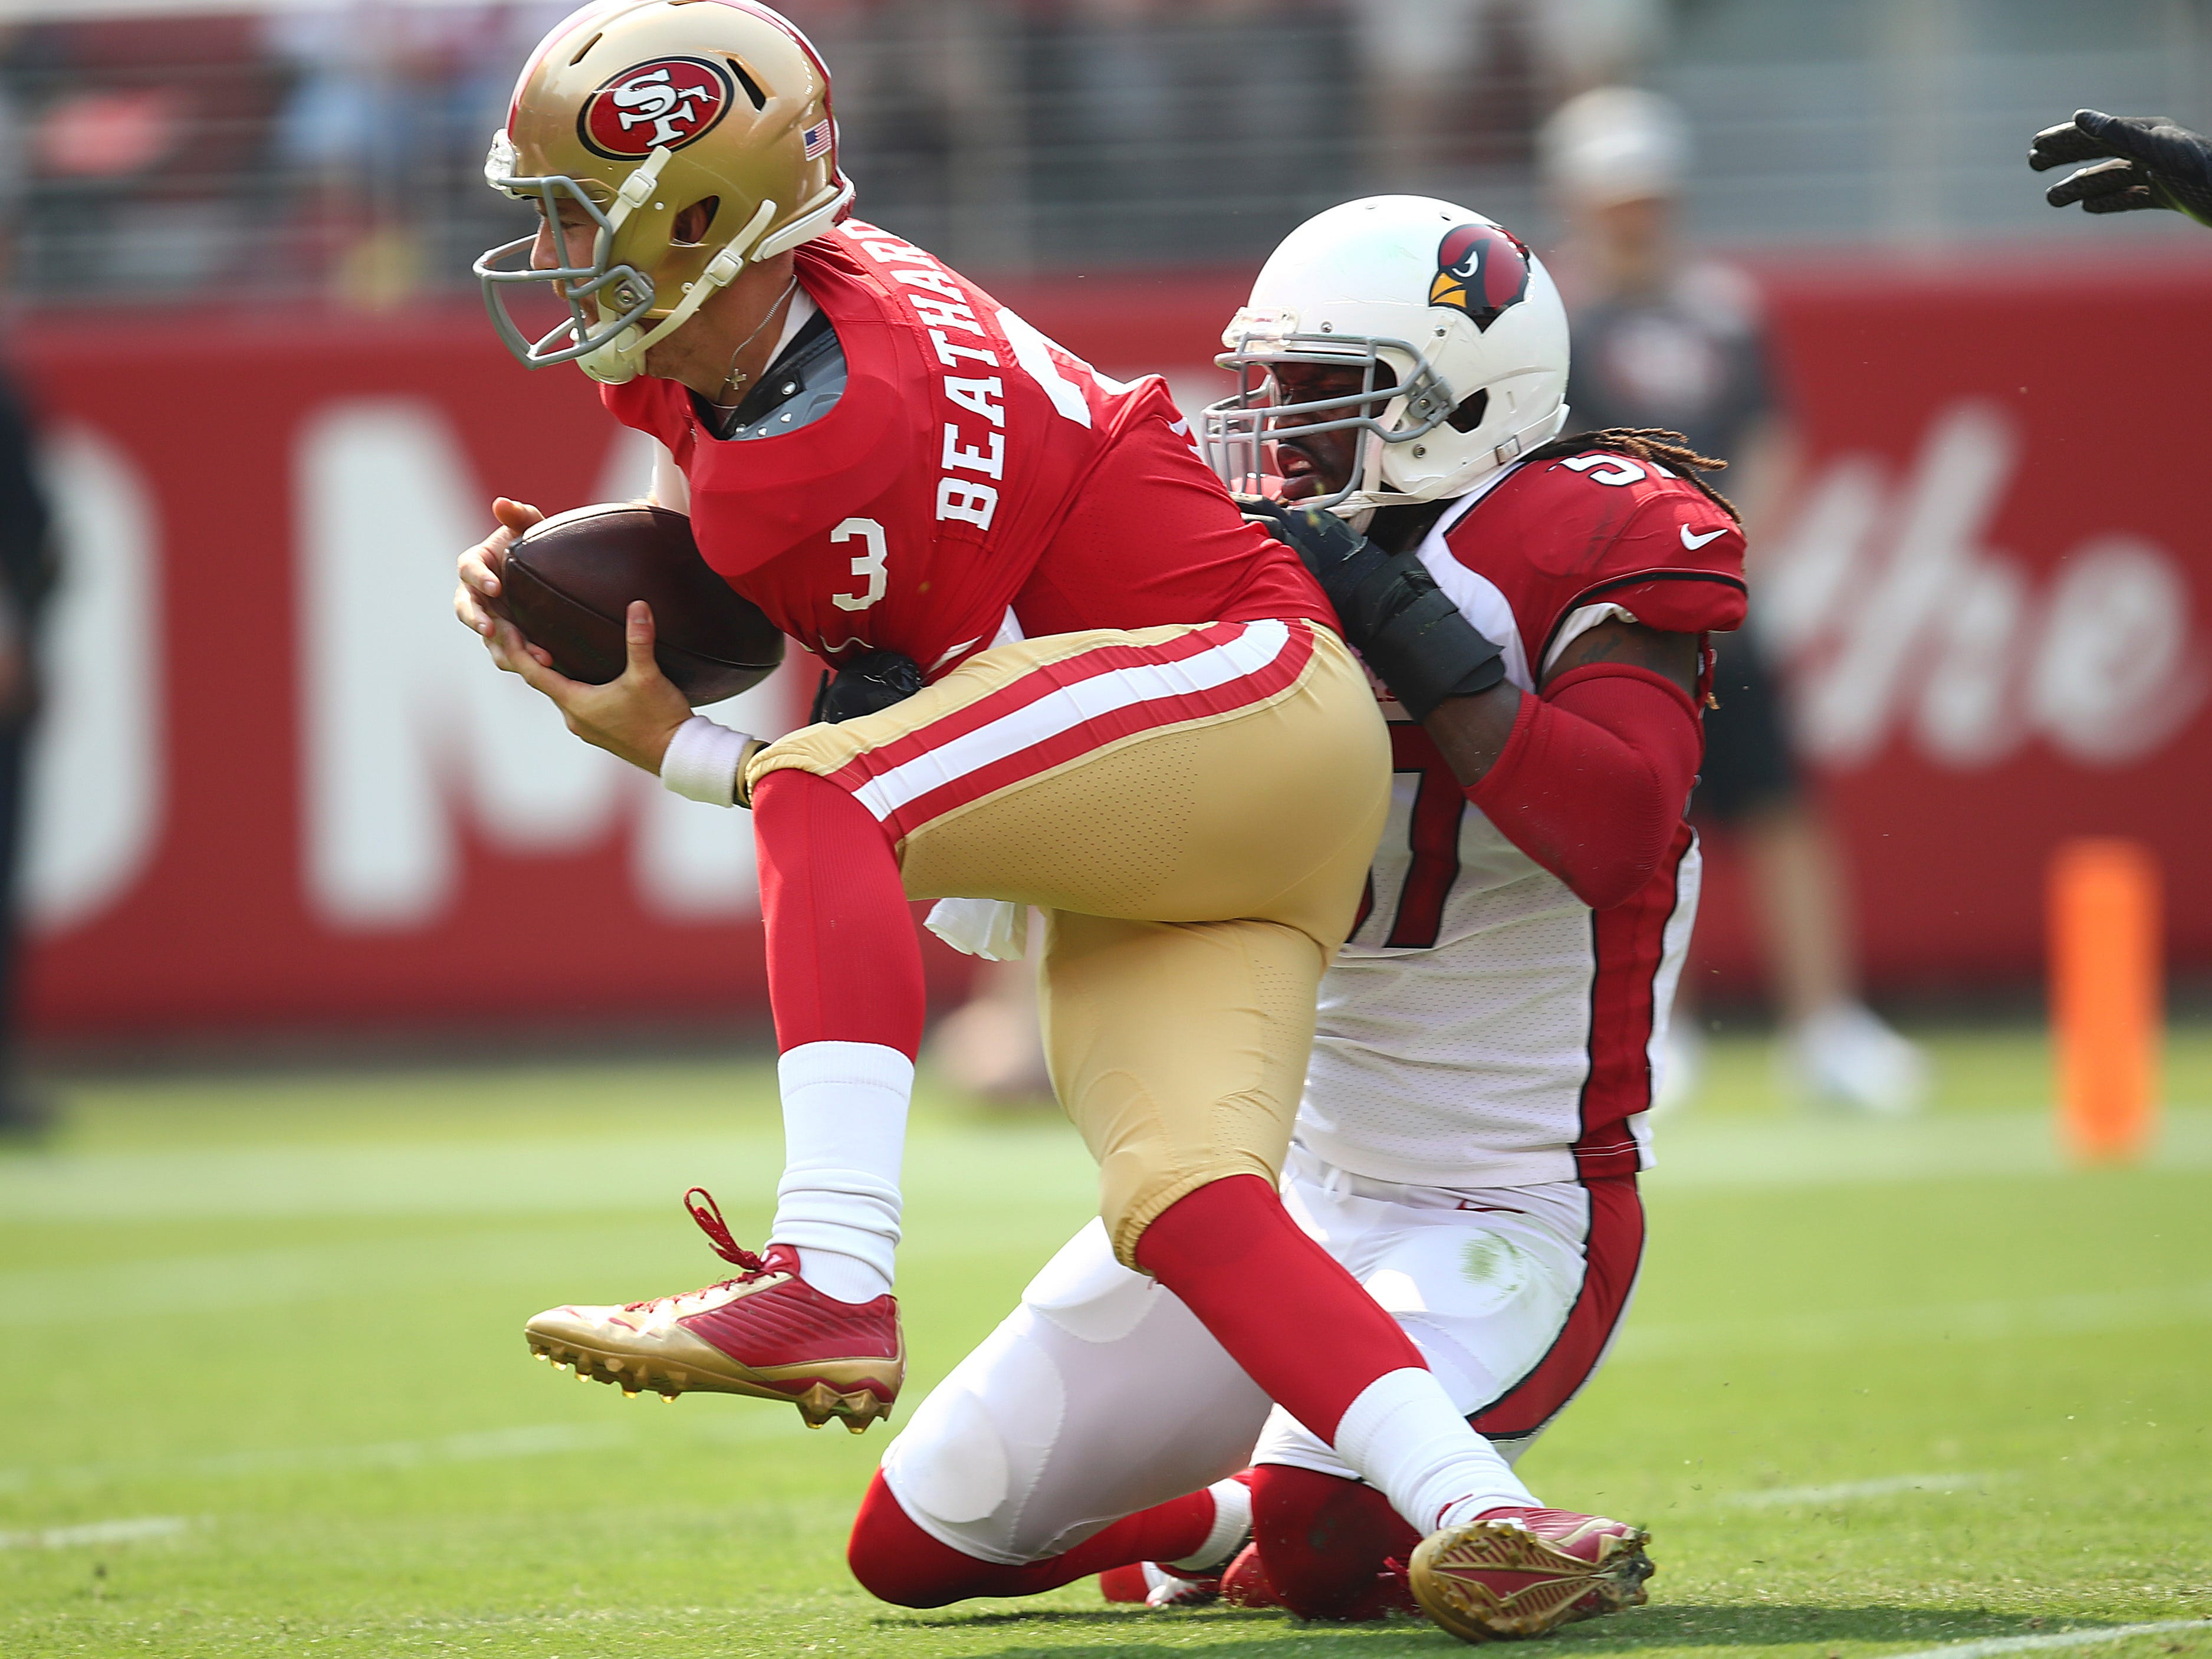 Arizona Cardinals linebacker Josh Bynes (57) sacks San Francisco 49ers quarterback C.J. Beathard (3) during the first half of an NFL football game in Santa Clara, Calif., Sunday, Oct. 7, 2018.